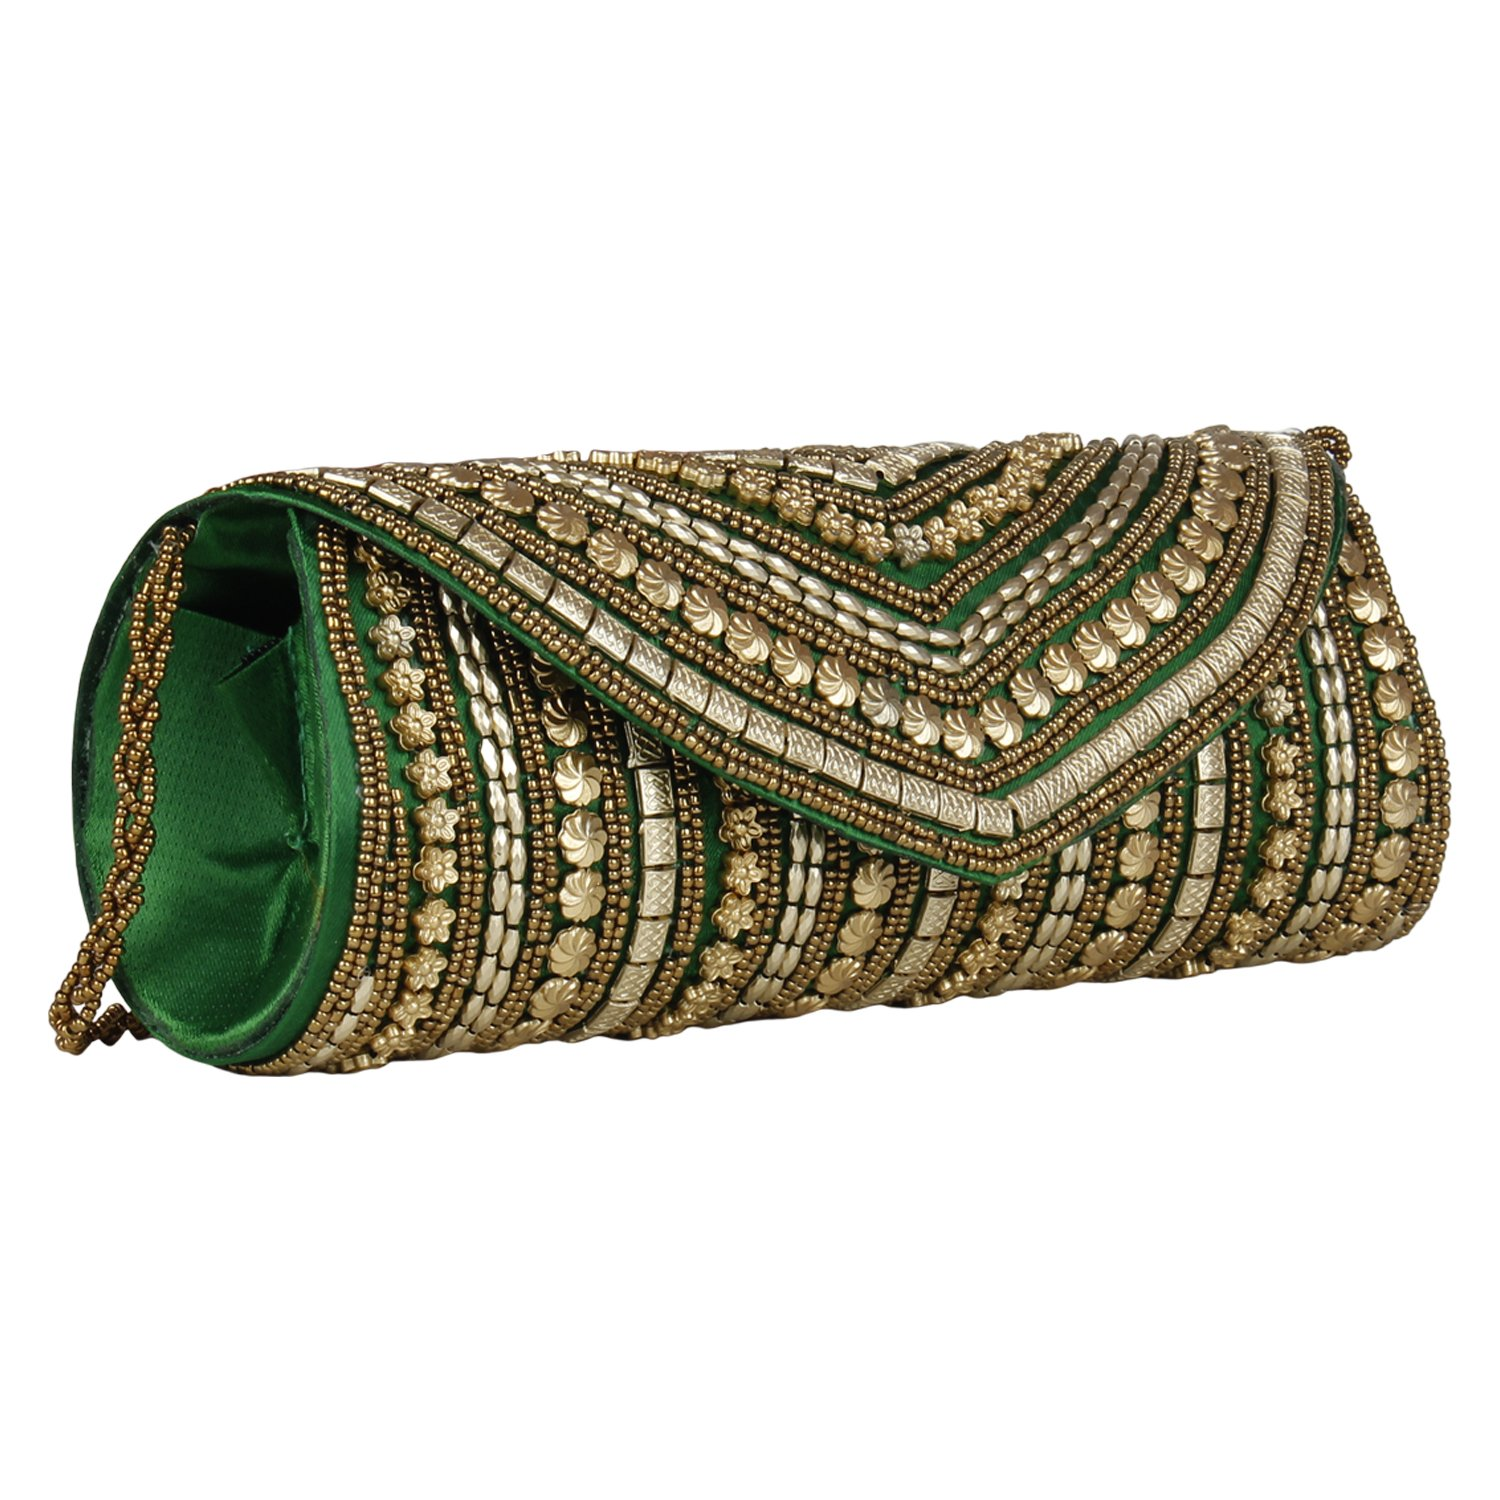 Beaded Sizzling Rajasthani Style Hand-Cum-Wedding Clutch for Women & Girls - Green Color